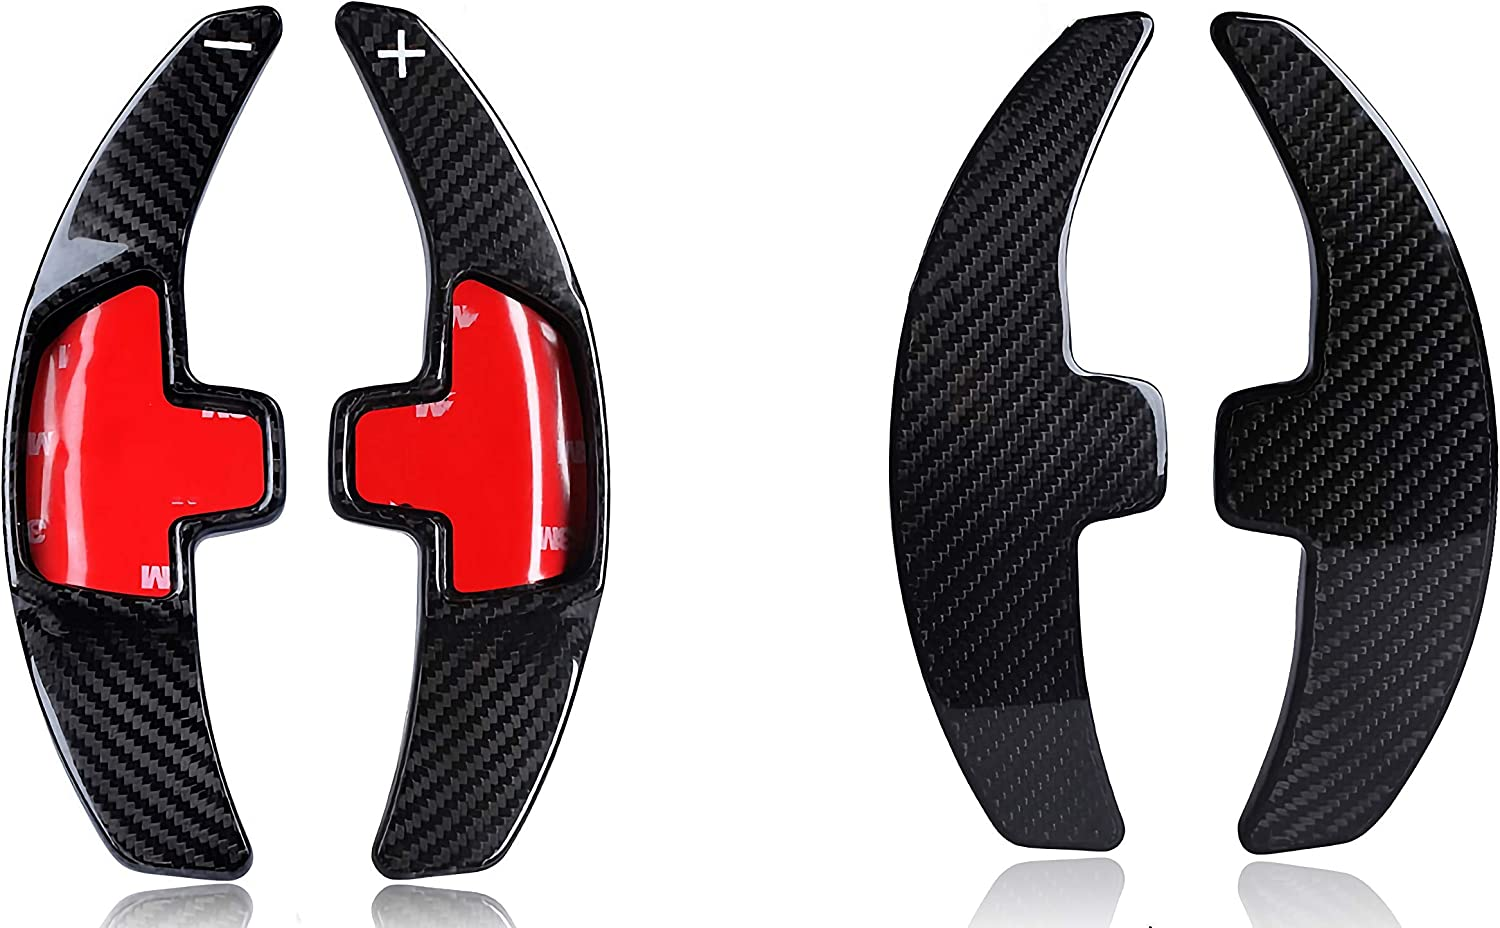 Full Carbon Genuine Carbon Shift Paddles Shift Paddles Suitable For Mercedes A B Gla C Cla Glc E Gle Class Gls Amg43 Auto